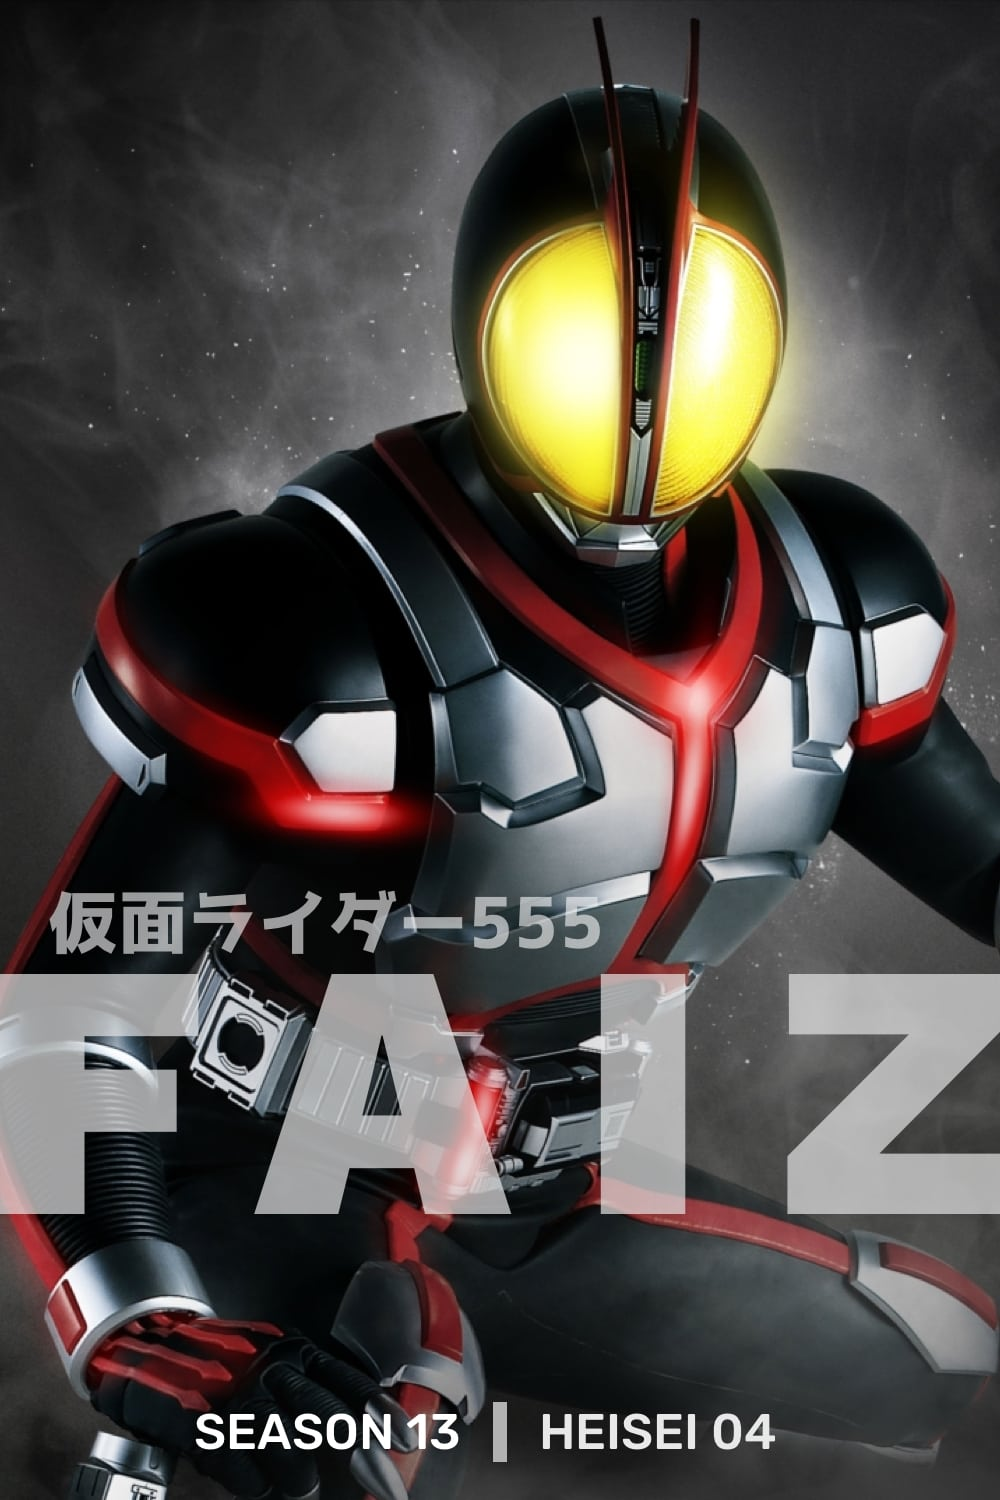 Kamen Rider - Season 21 Episode 30 : King, Panda, Memory of Flame Season 13